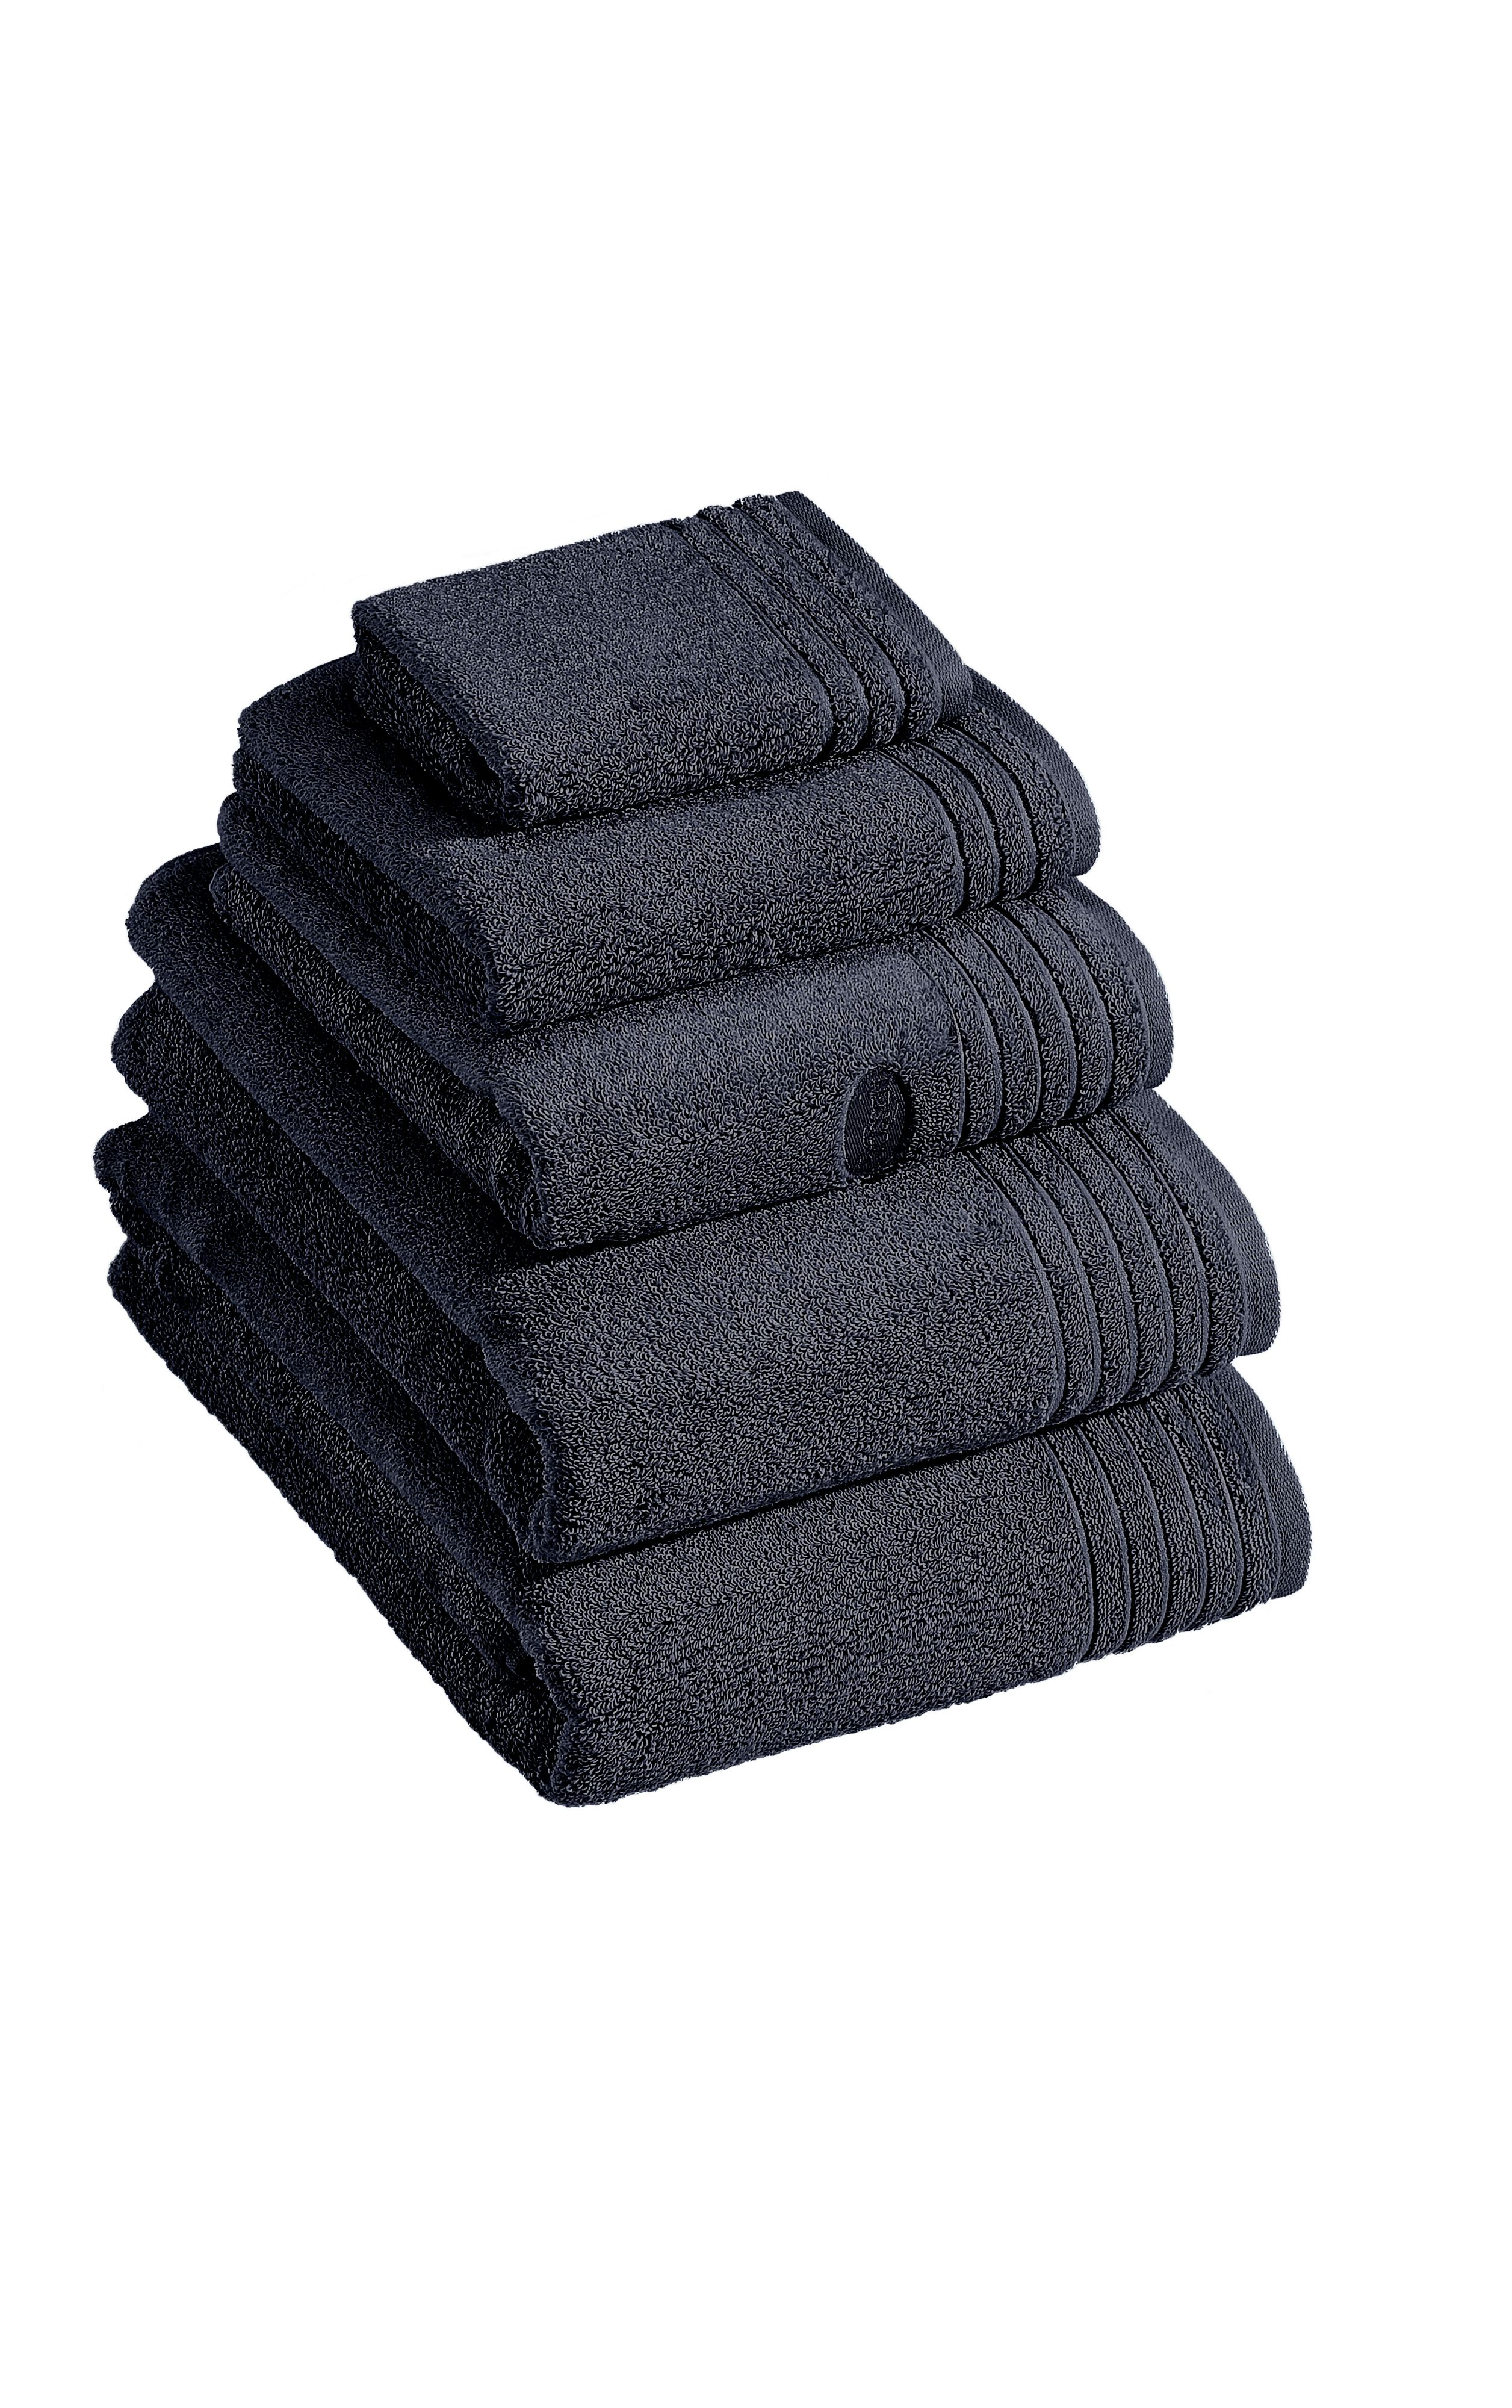 Dreams towel range in anthracite